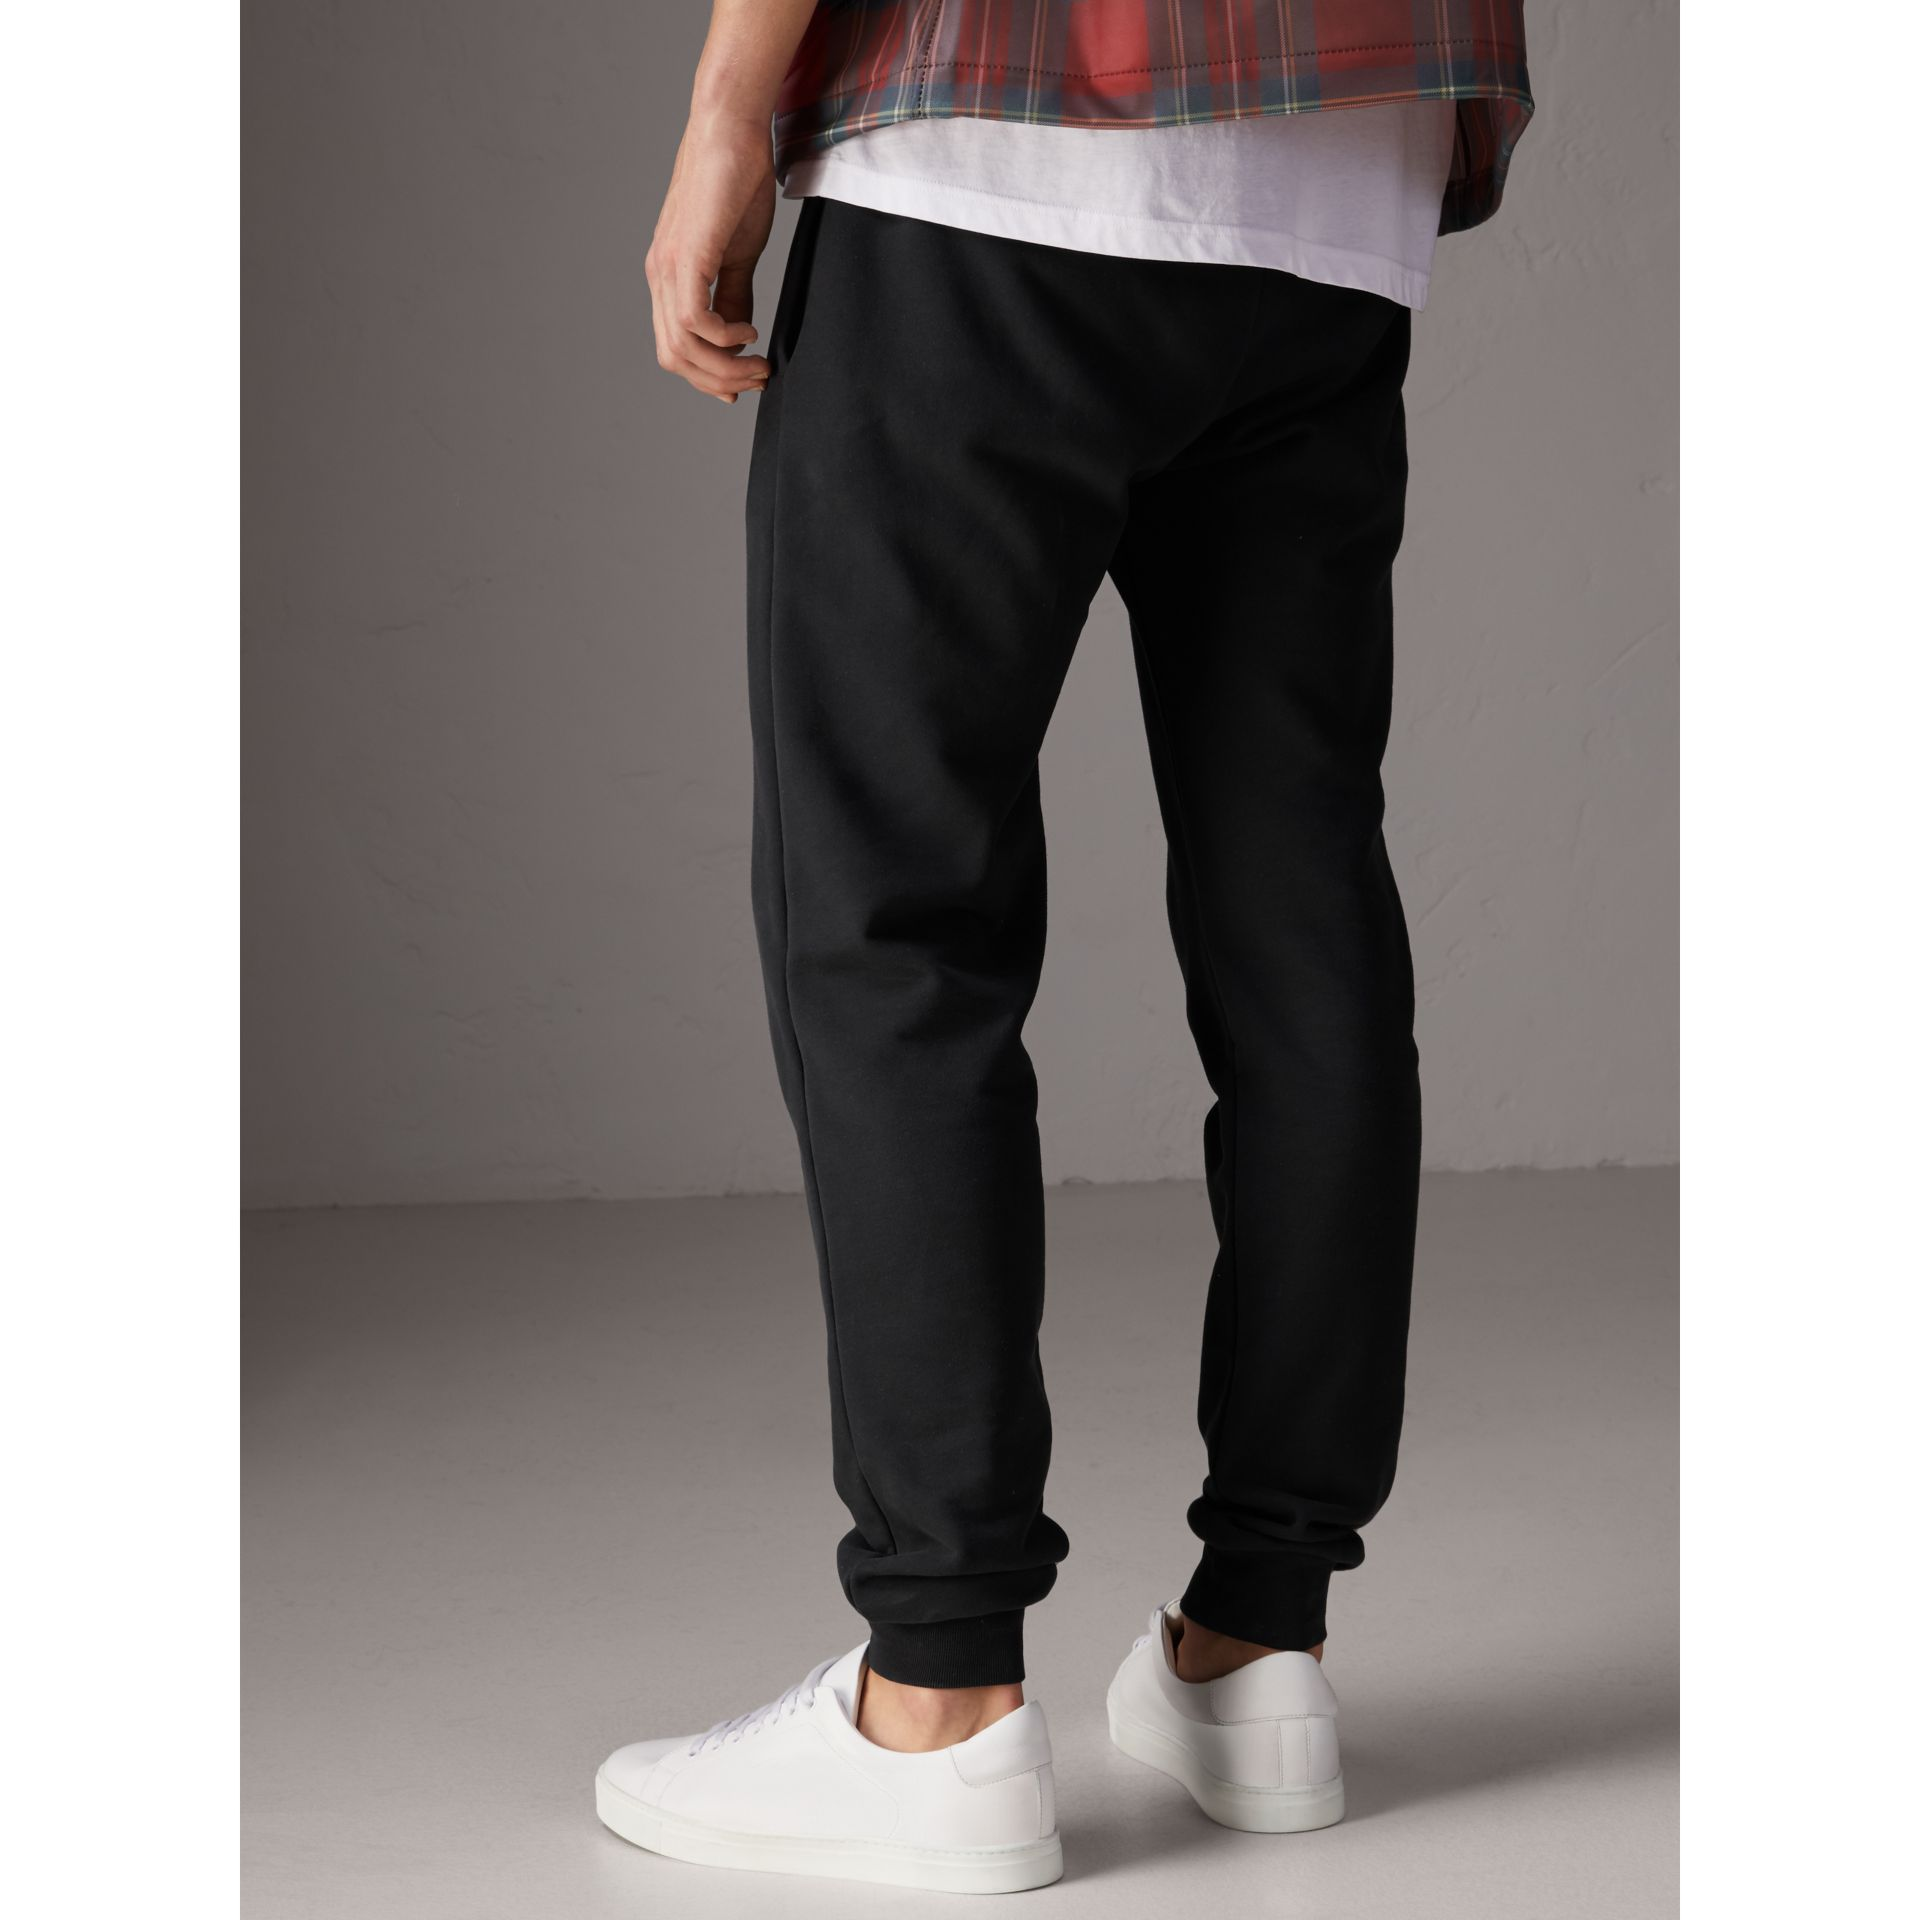 Burberry x Kris Wu Sweatpants in Black - Men | Burberry United Kingdom - gallery image 2